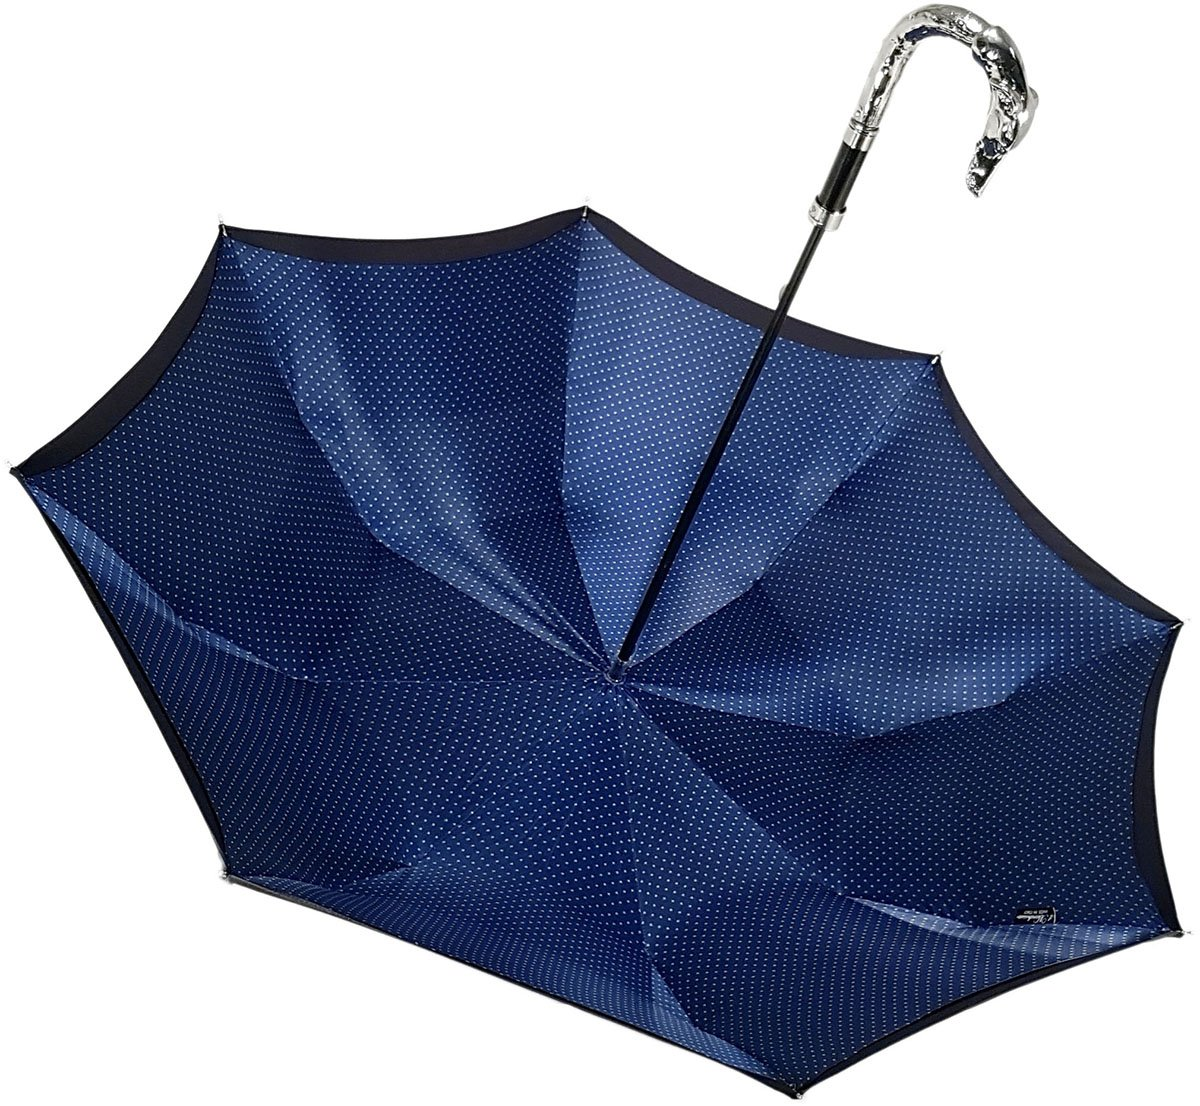 Luxury Greyhoud Man Umbrella - il-marchesato